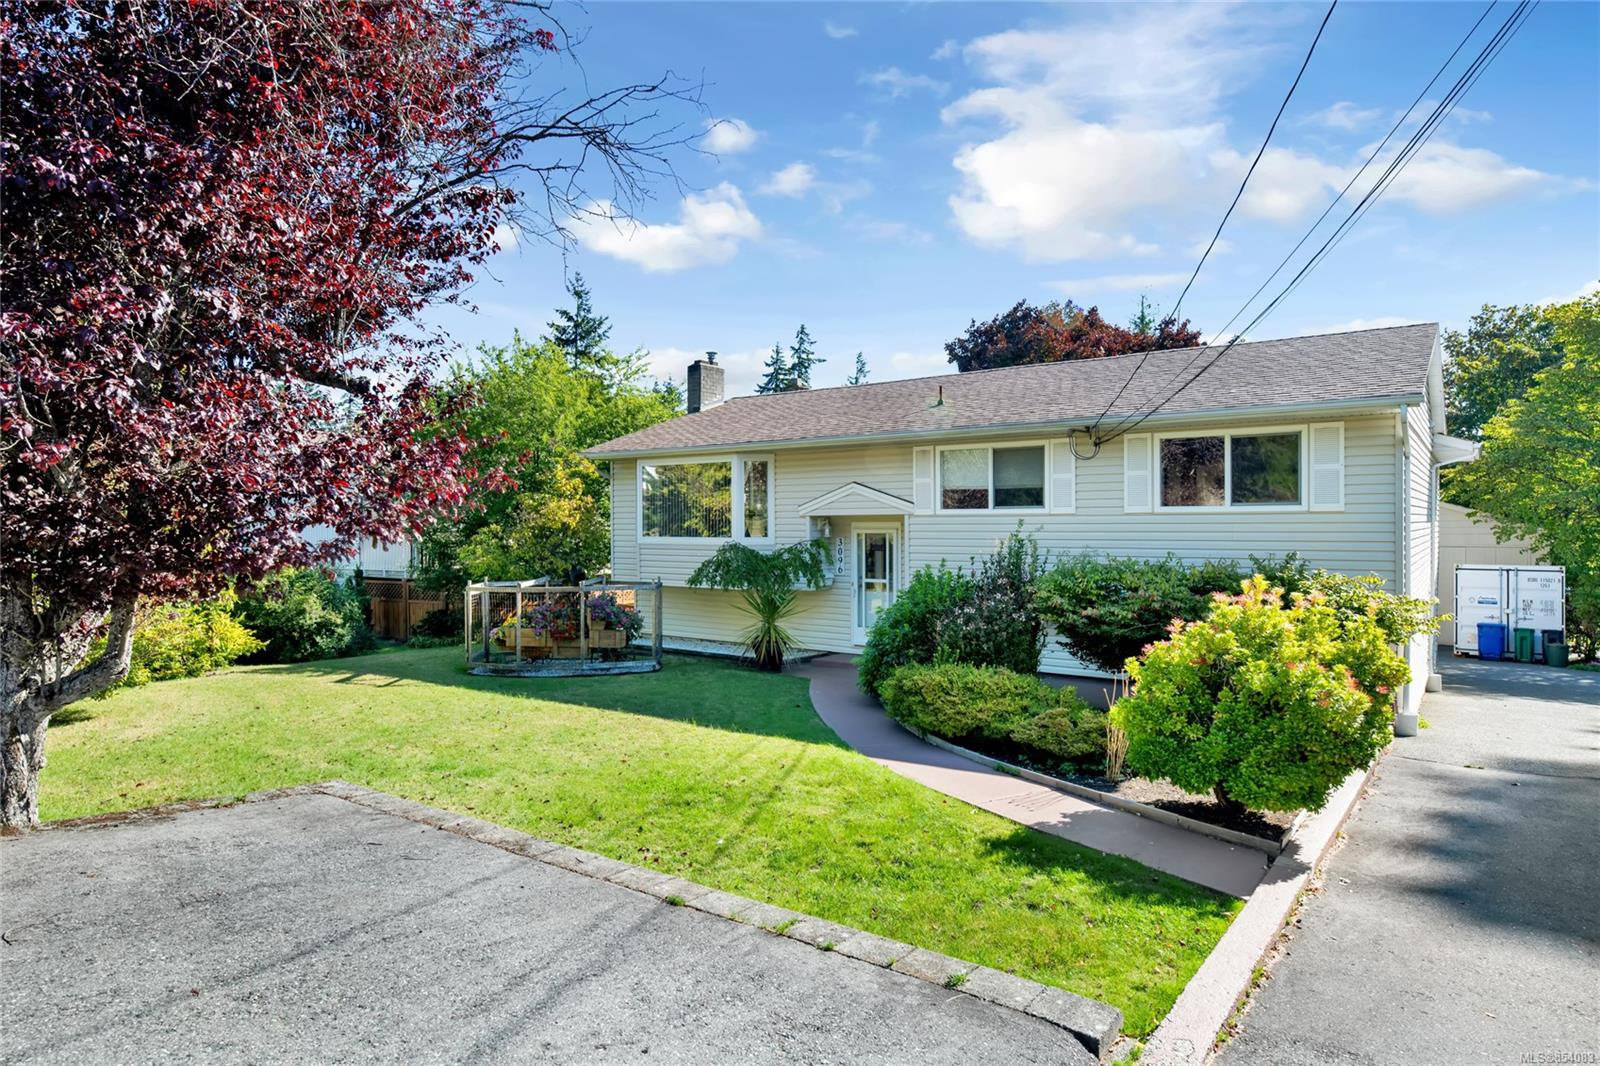 Main Photo: 3096 Rock City Rd in : Na Departure Bay Single Family Detached for sale (Nanaimo)  : MLS®# 854083